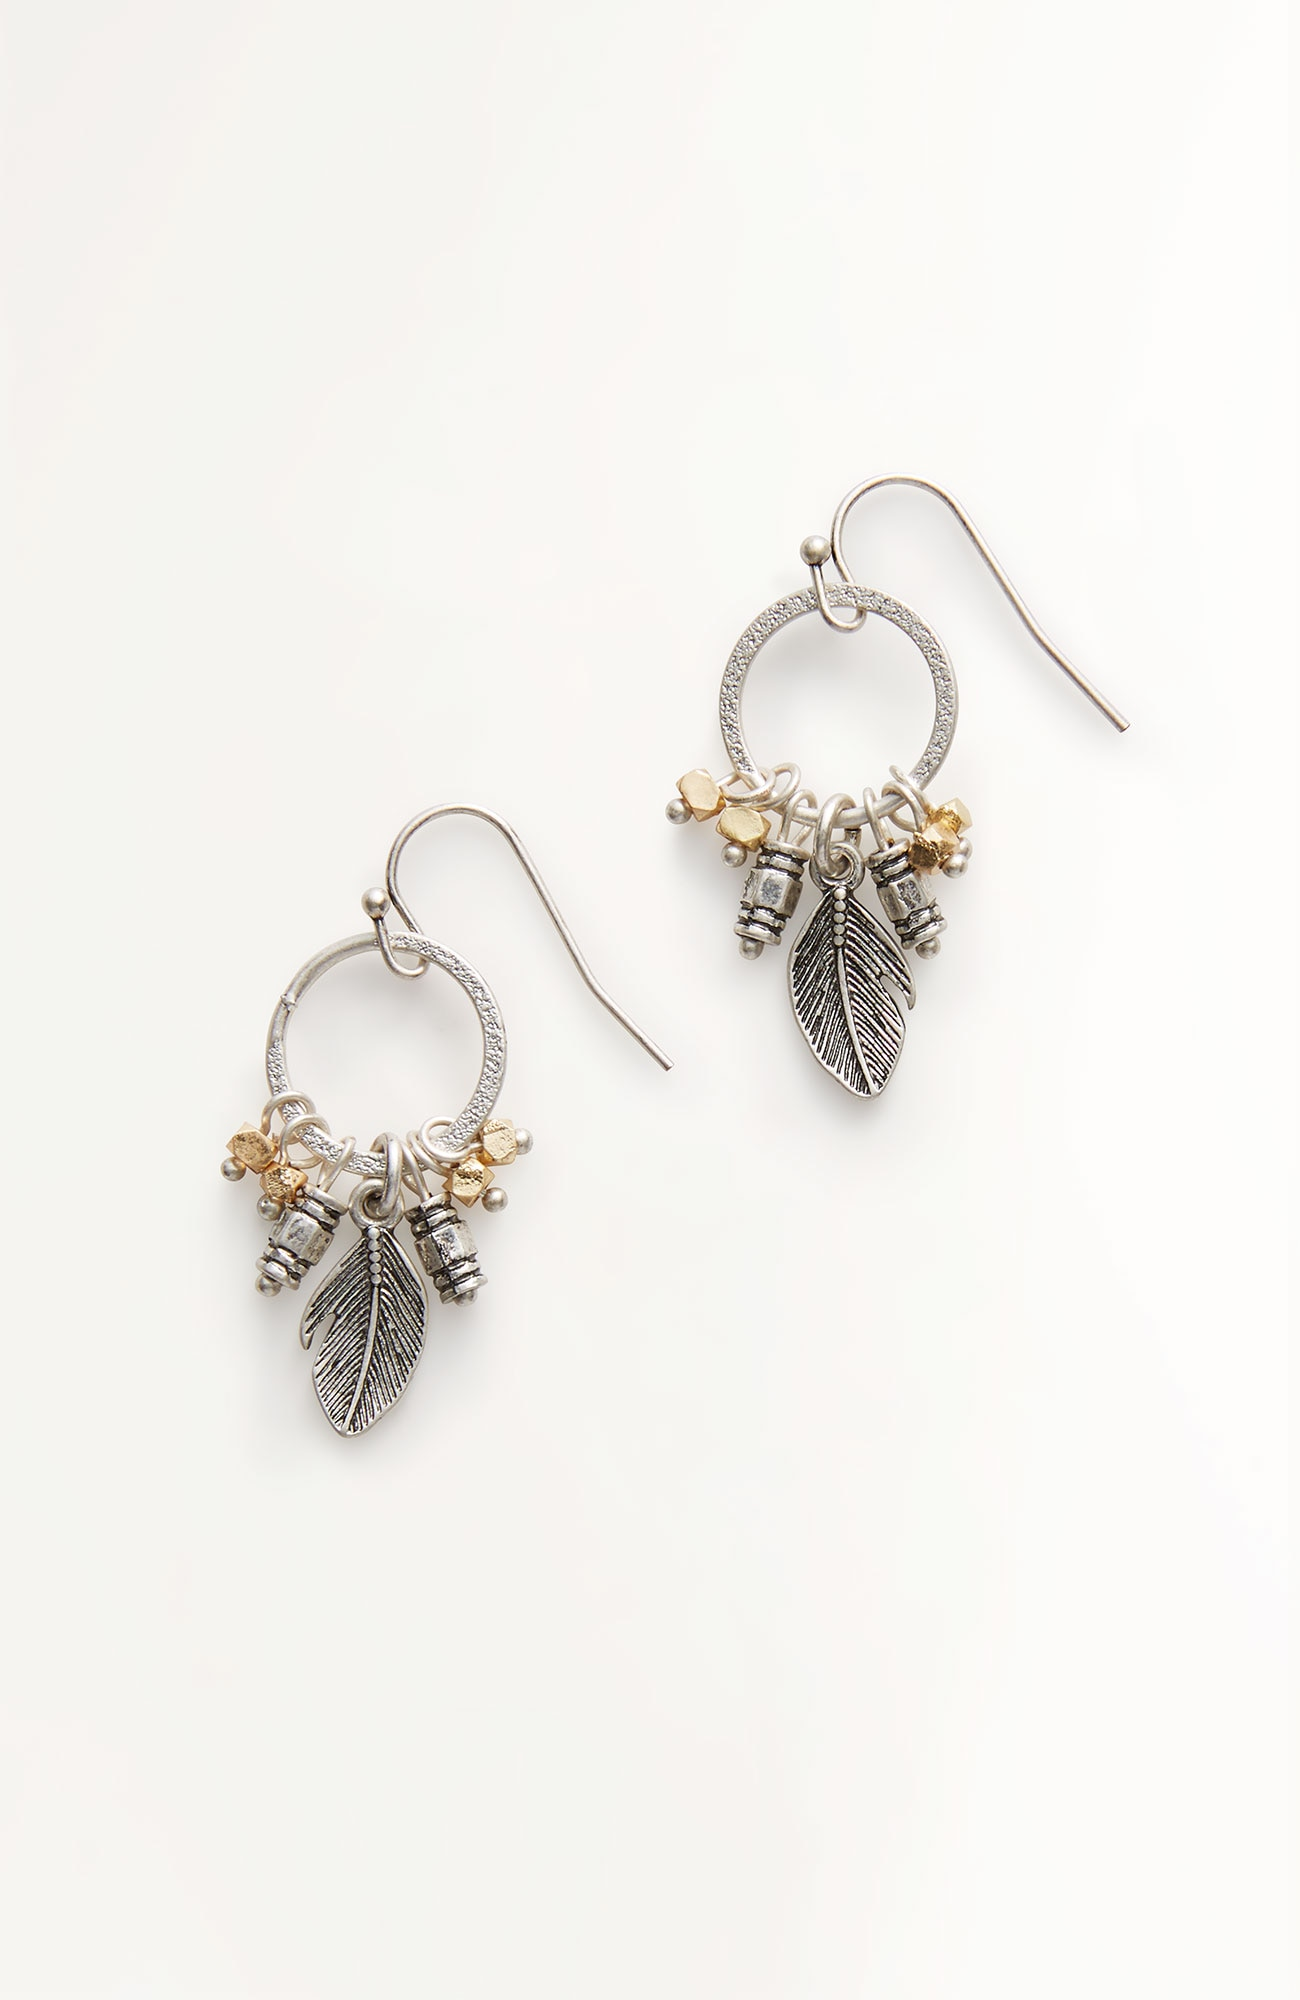 mixed-charms drop earrings